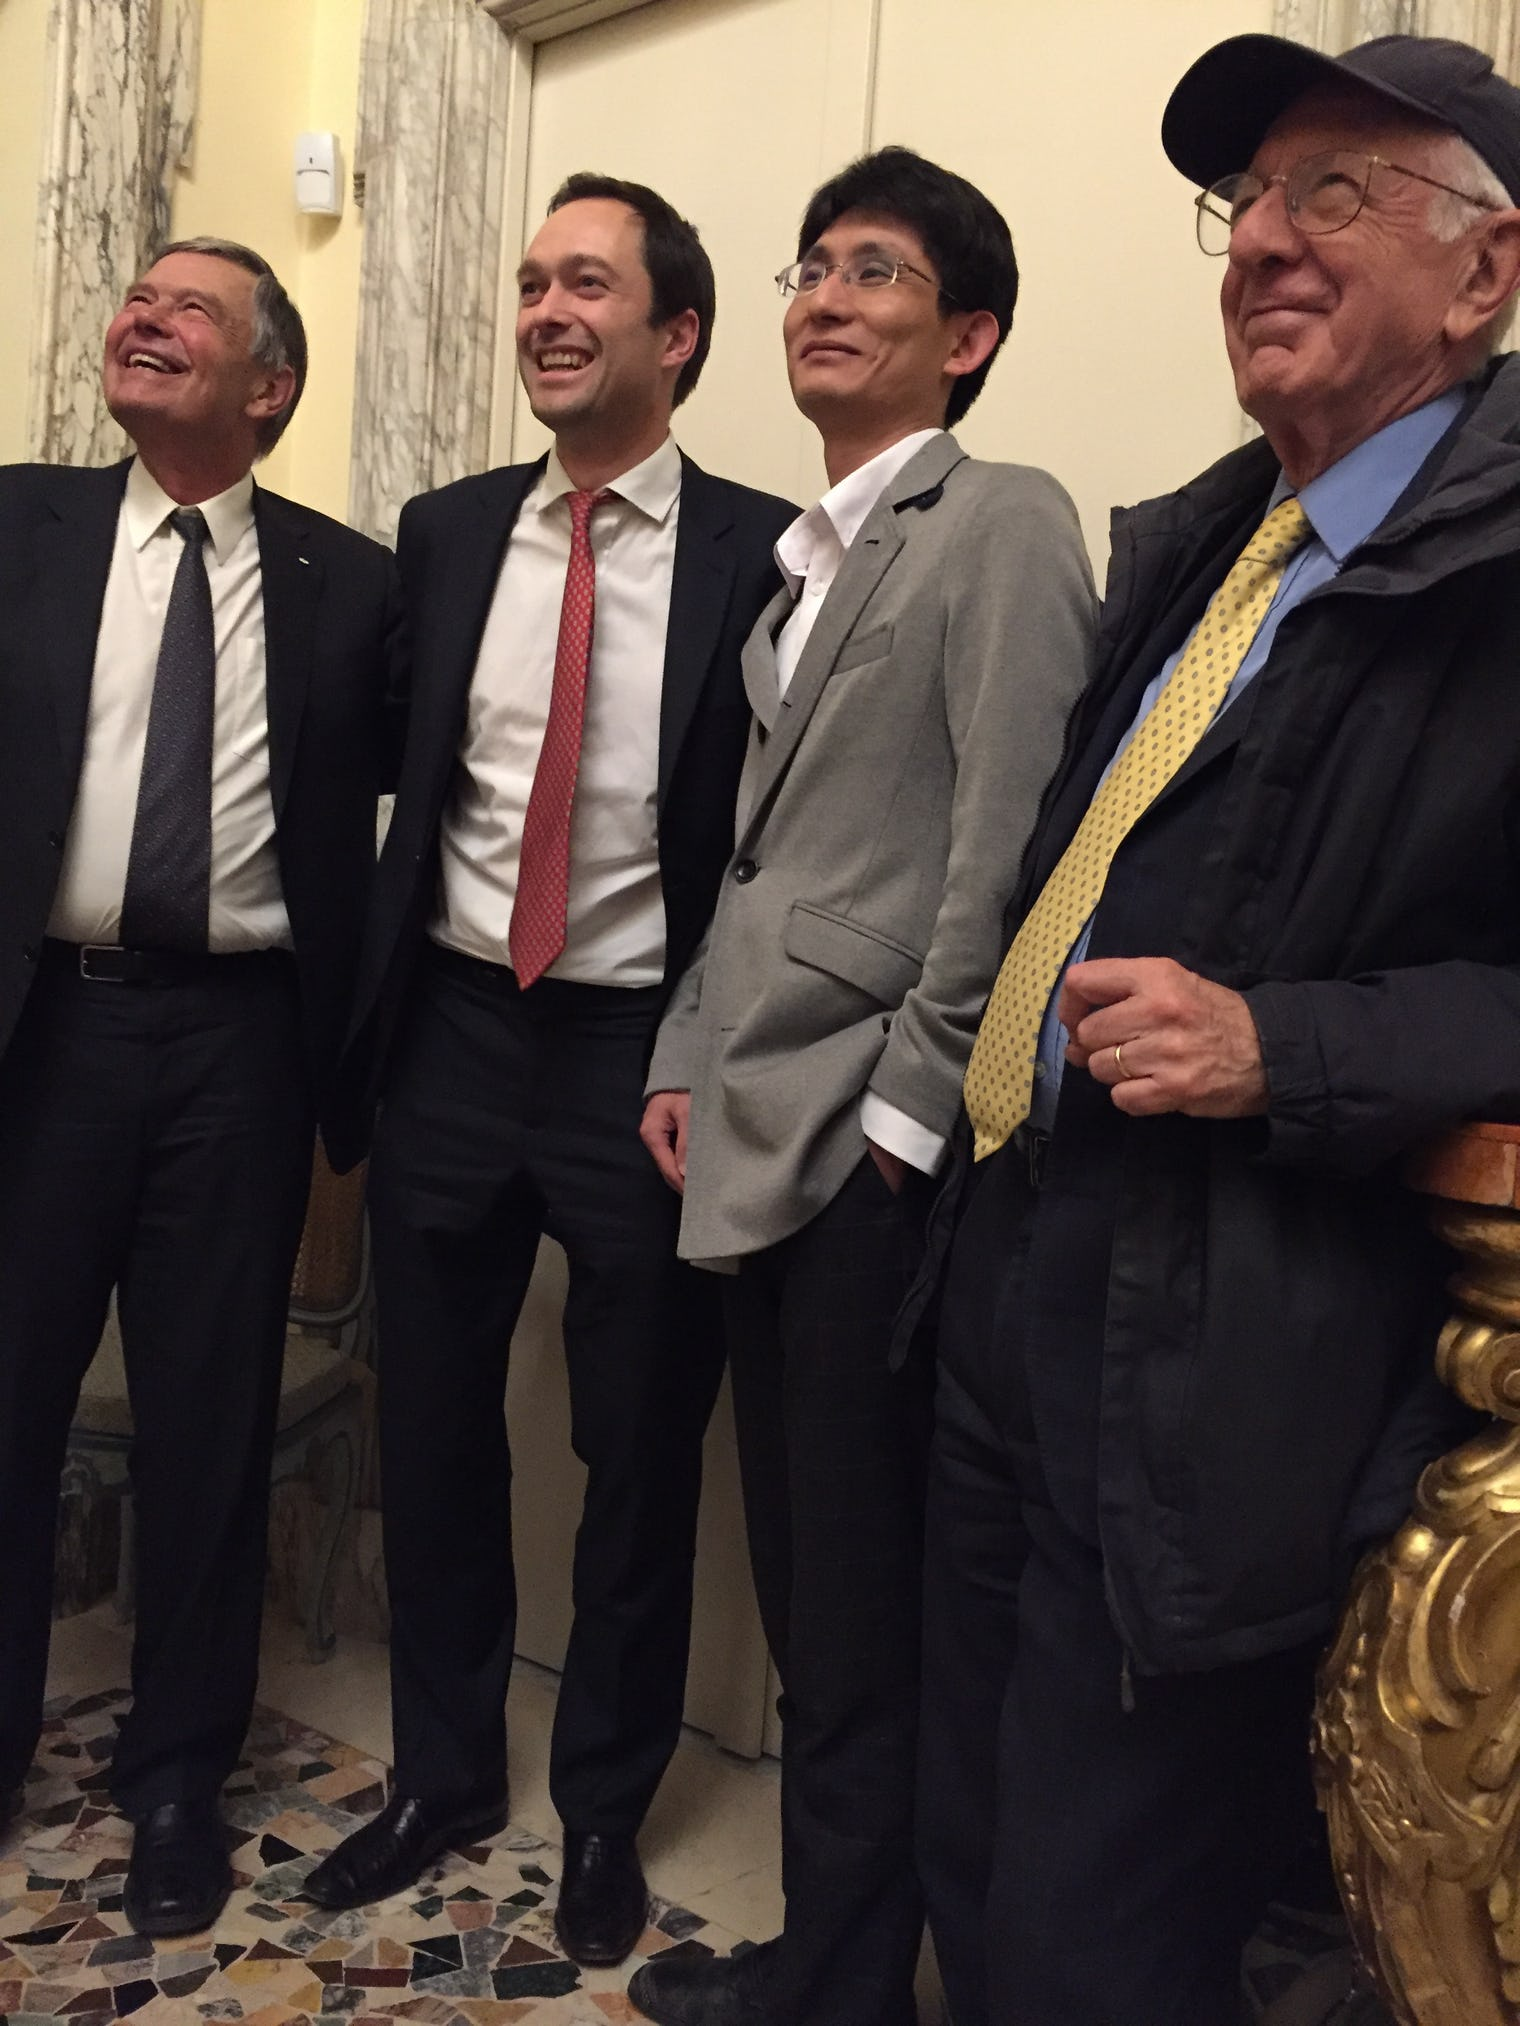 The authors of the upcoming World Happiness Report: John Helliwell, Jan-Emmanuel De Neve, Shun Wang, and Richard Layard.World Happiness Report